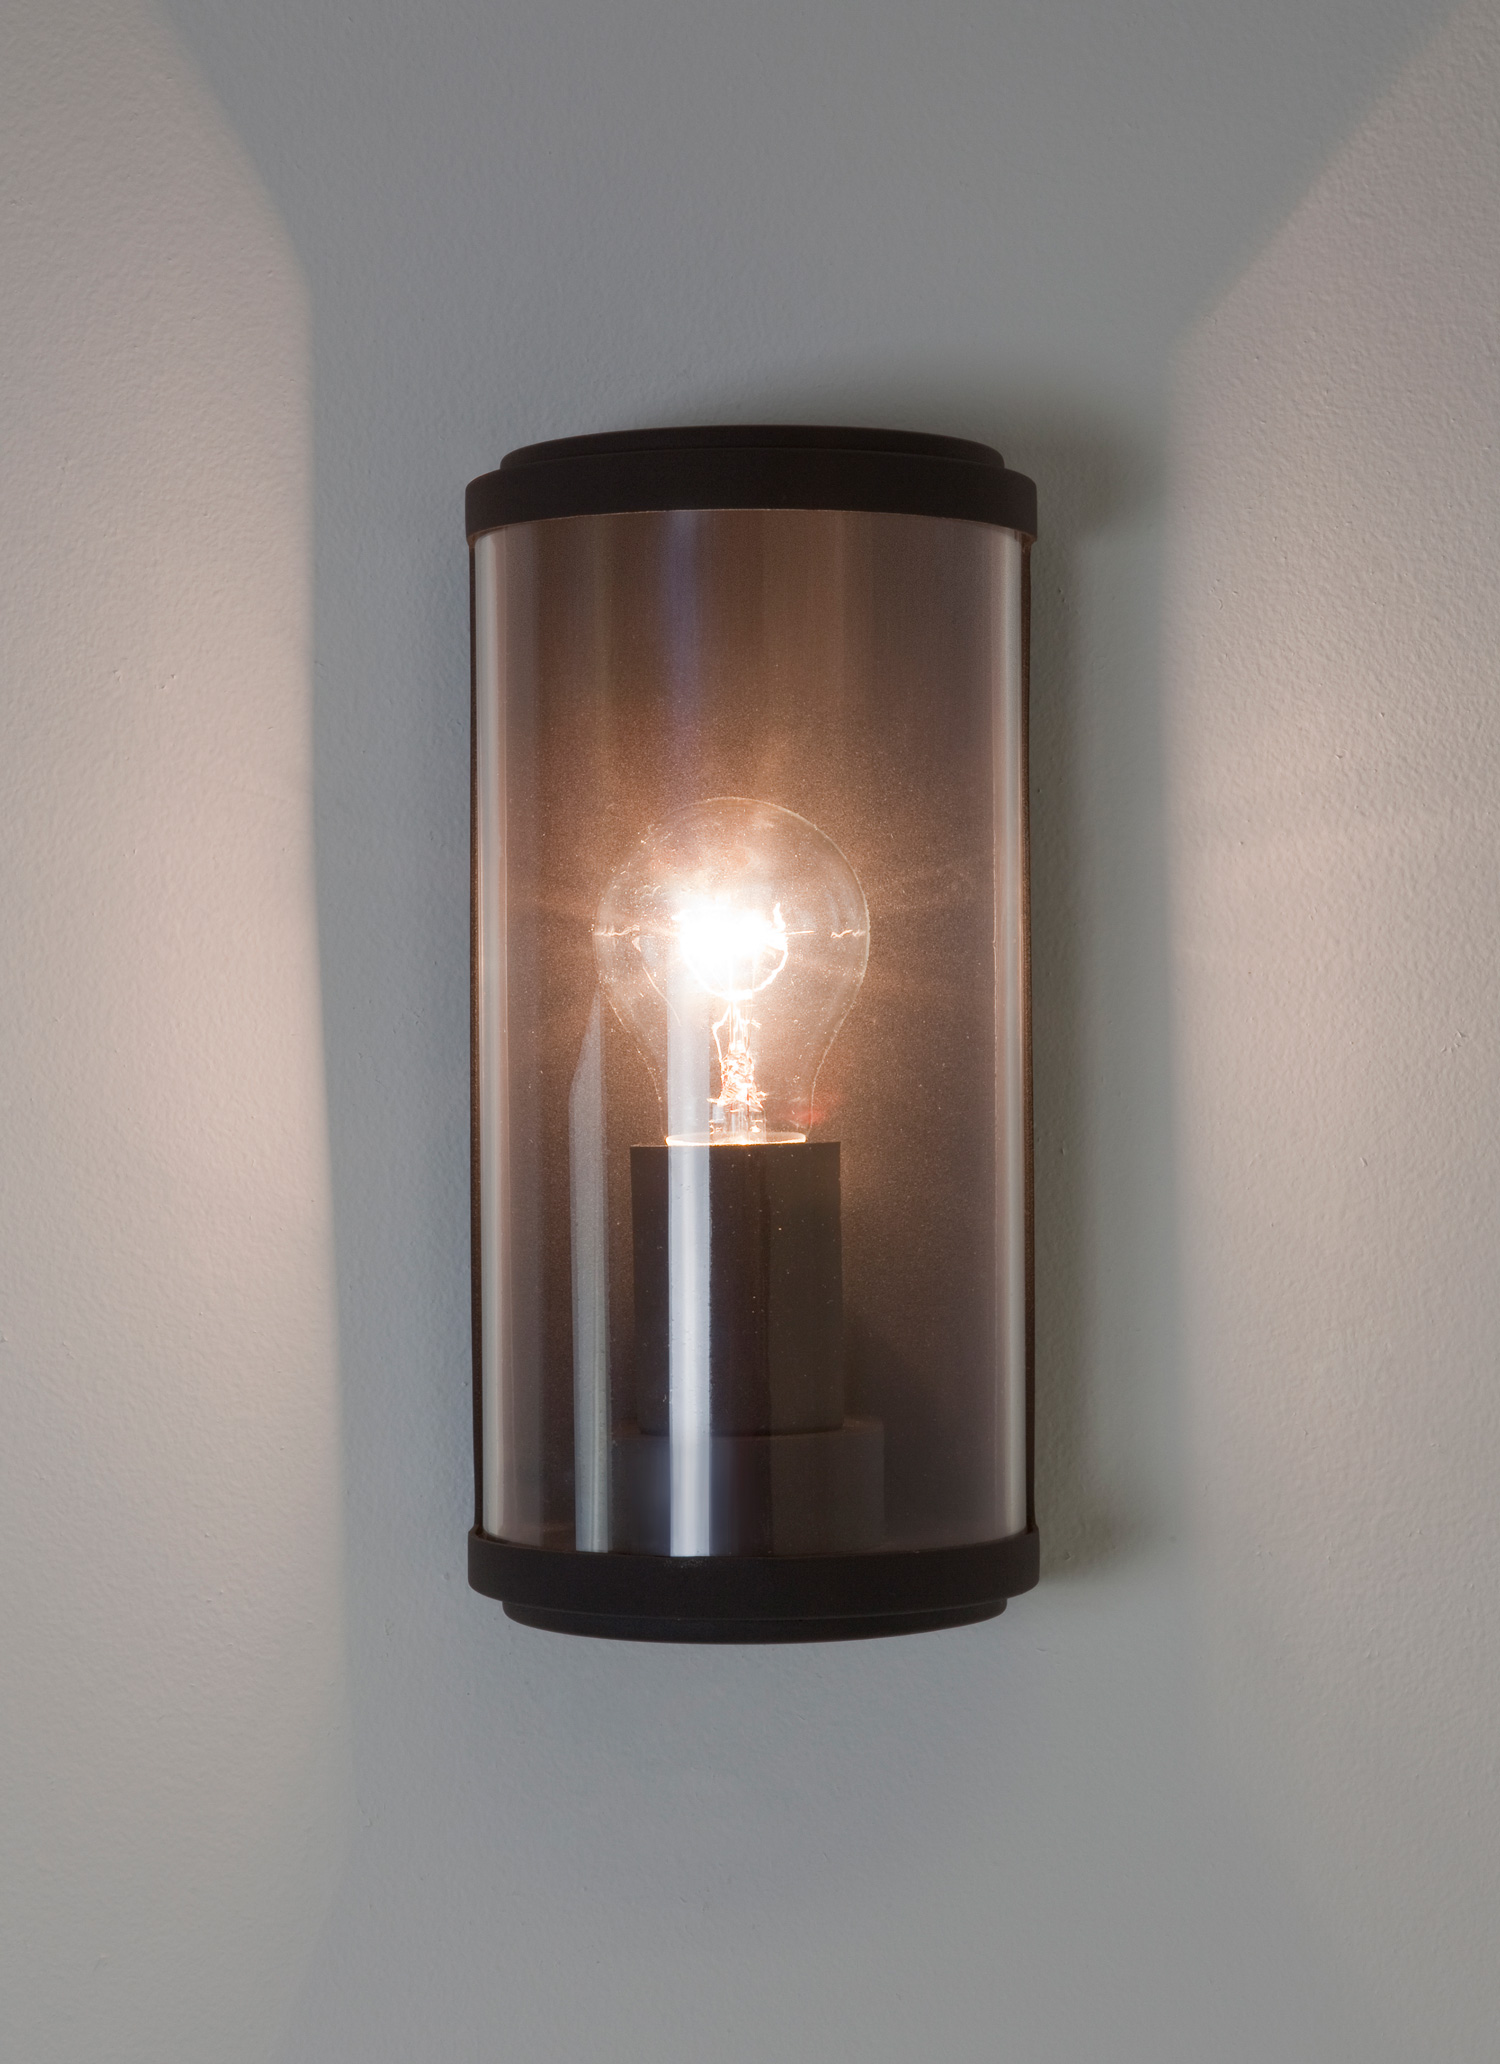 Astro Paros IP44 outdoor external wall light 60W E27 lamp black clear glass eBay